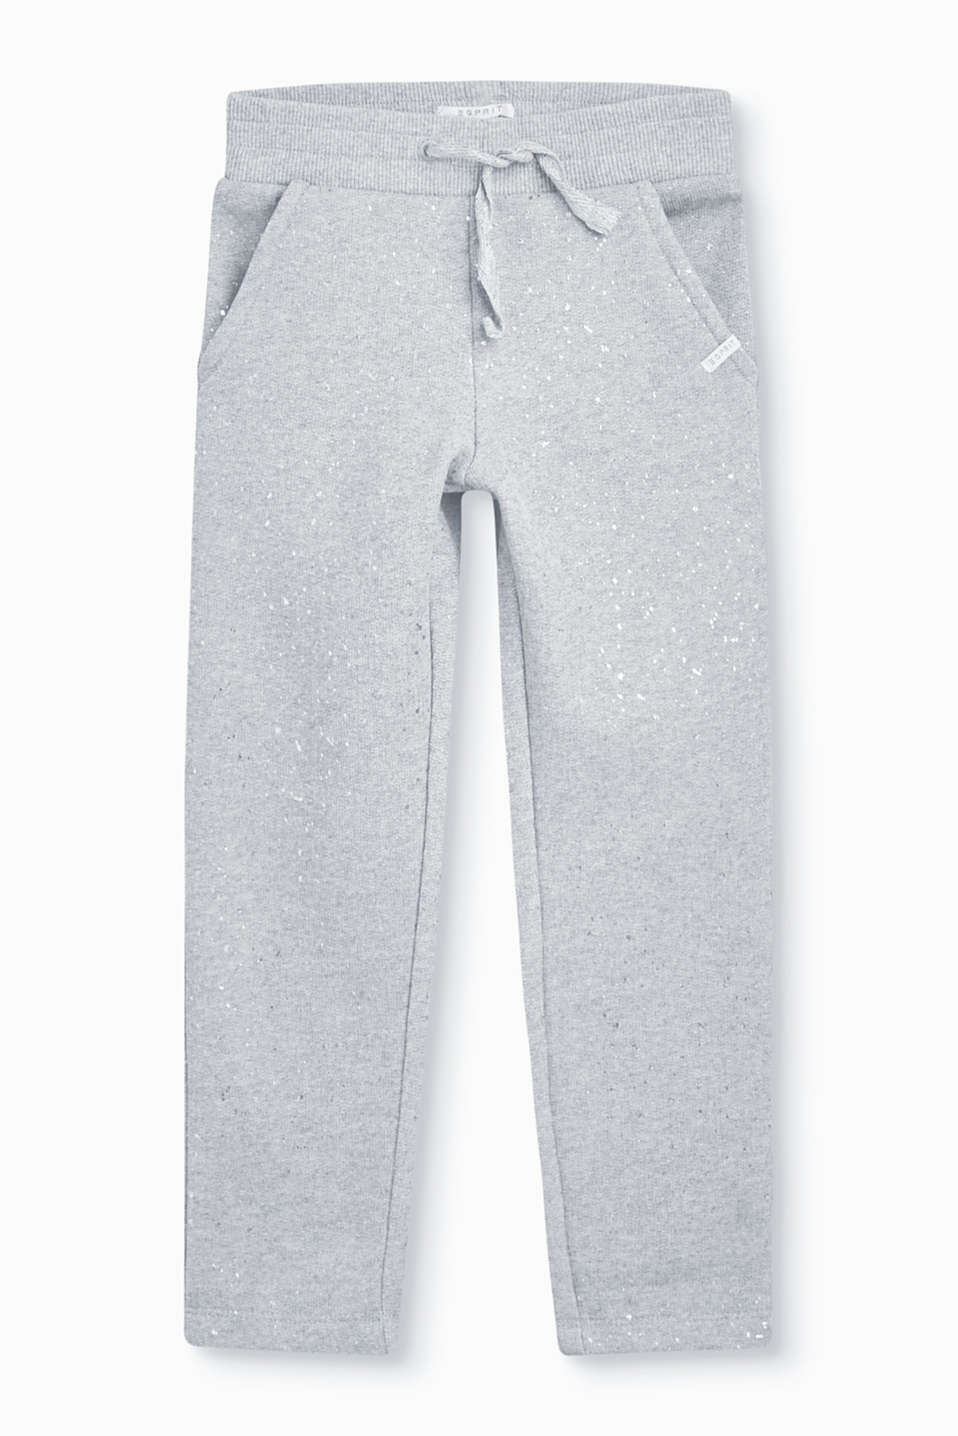 Striking shimmering flecks of colour give these comfortable tracksuit bottoms their stylish look.